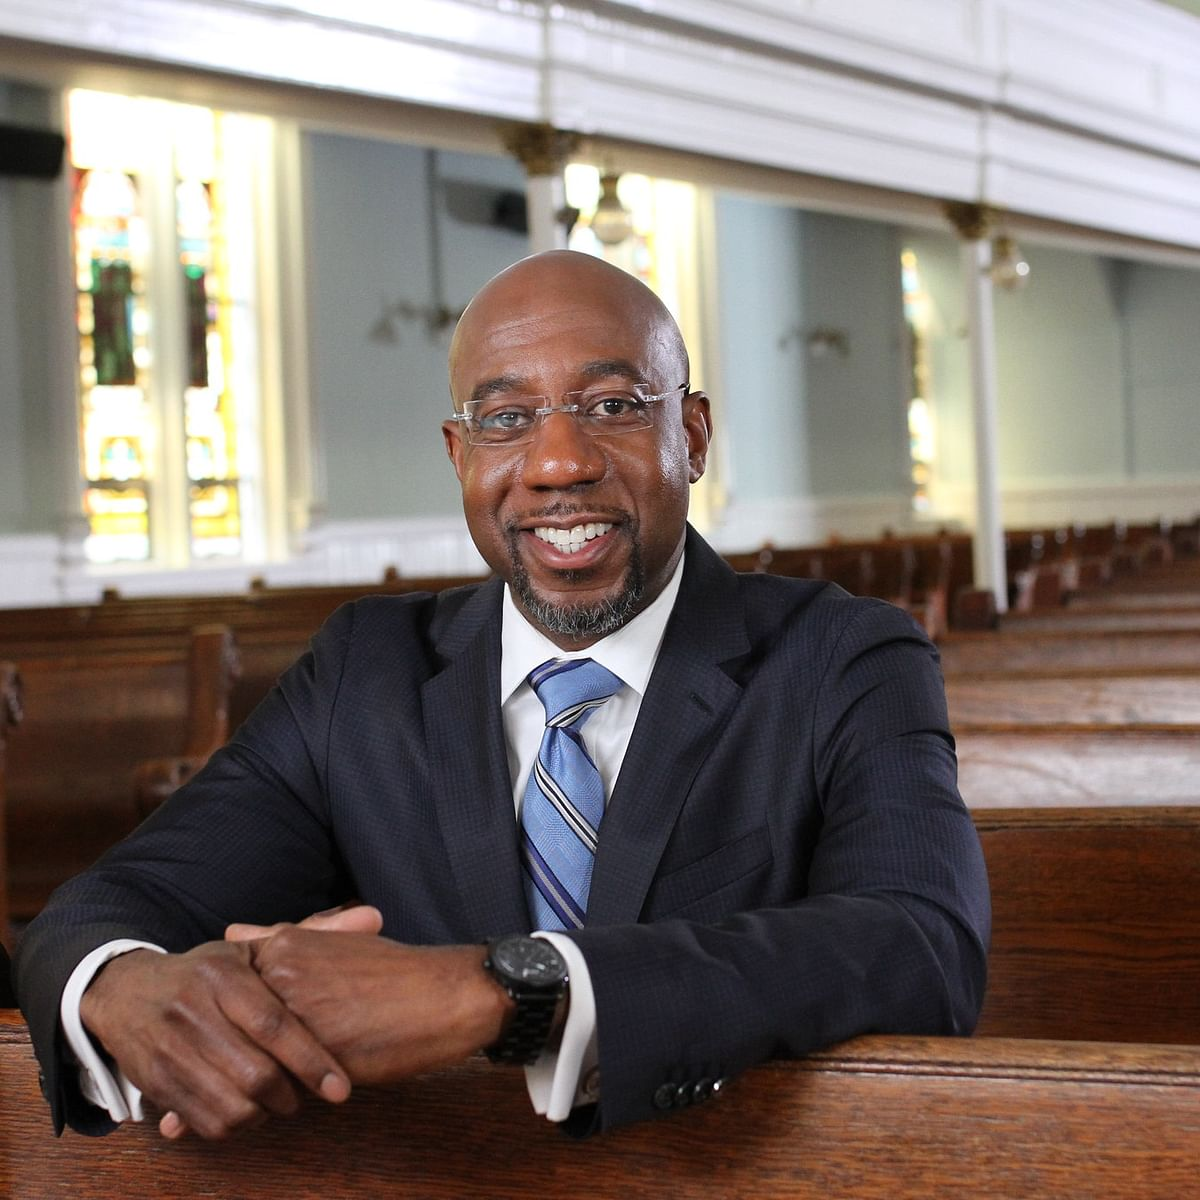 Raphael Warnock makes history, becomes Georgia's first Black Senator in closely contested runoff polls